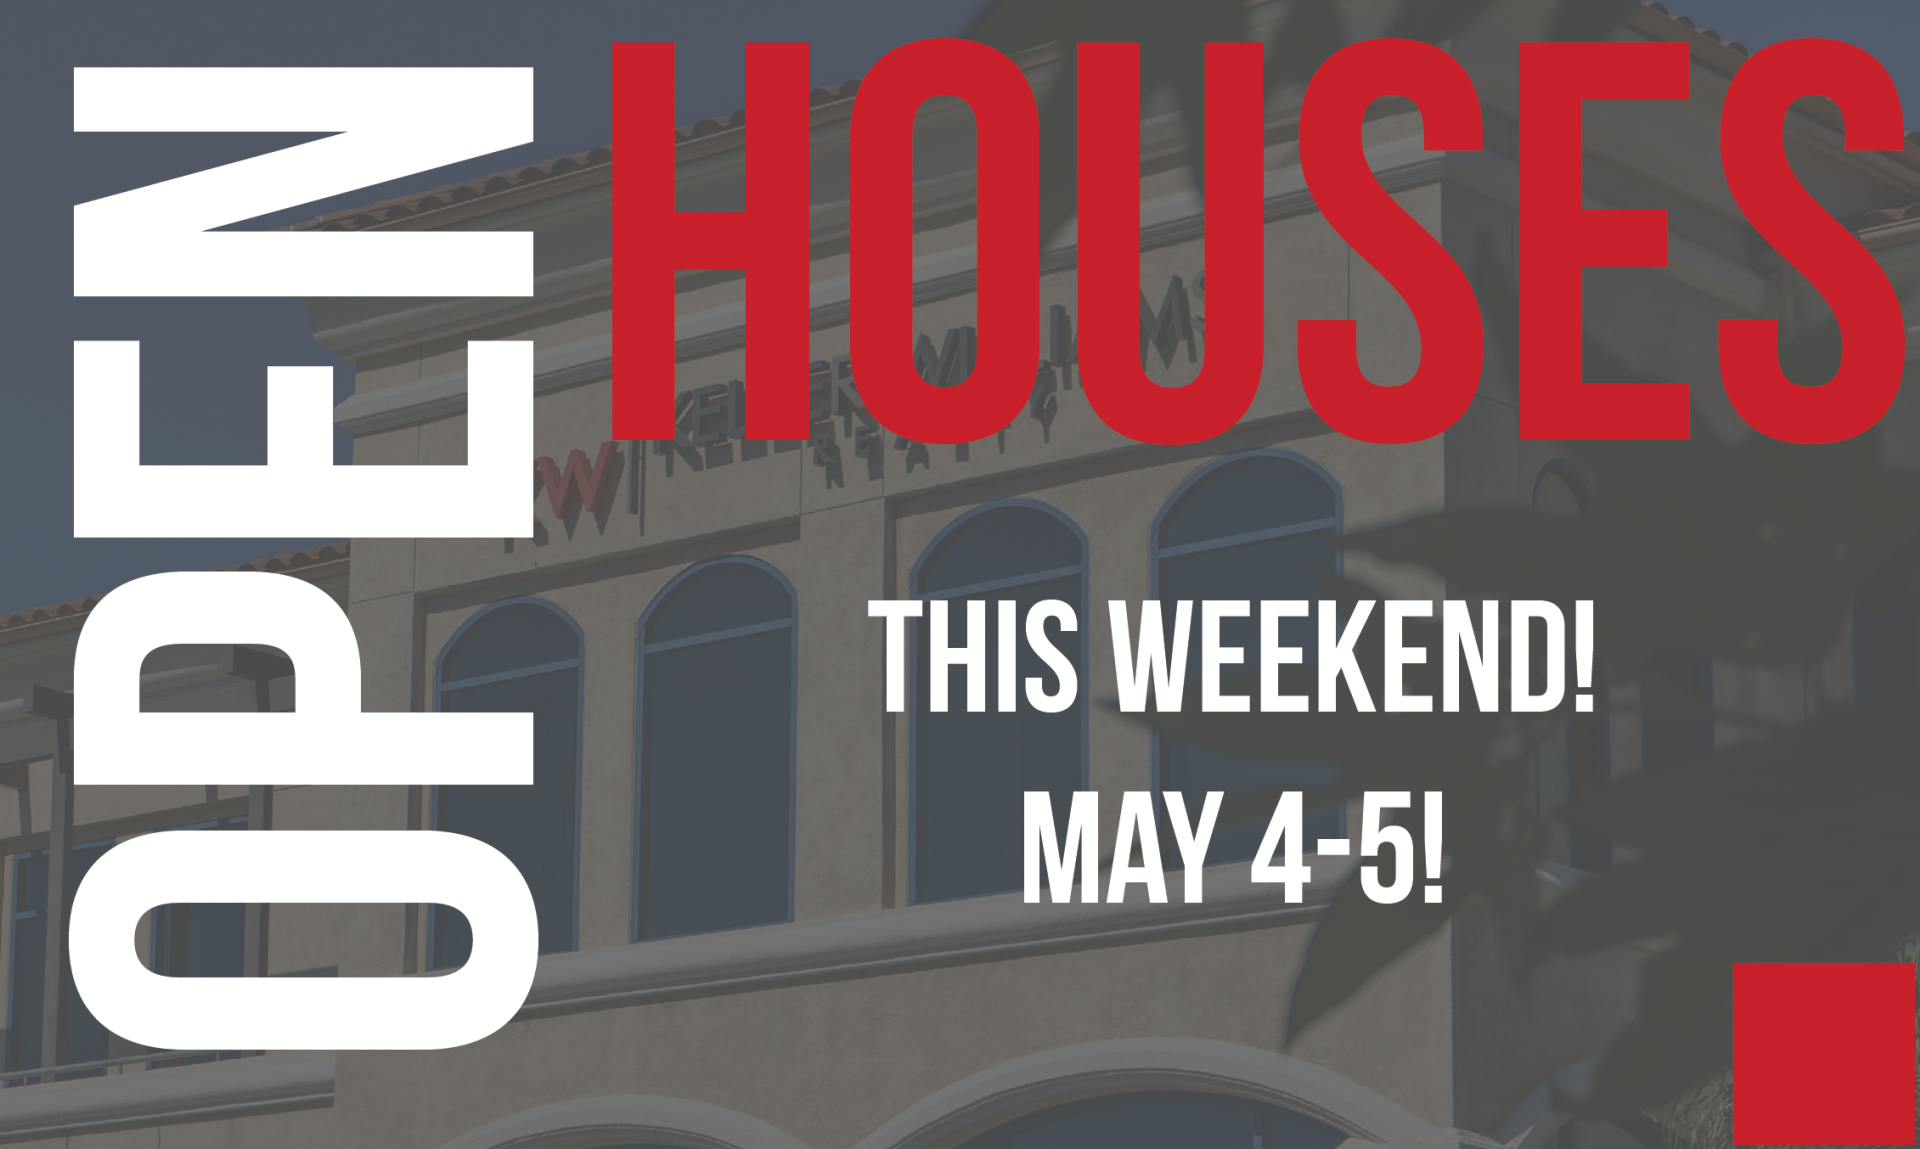 Open Houses This Weekend!! May 4-5!